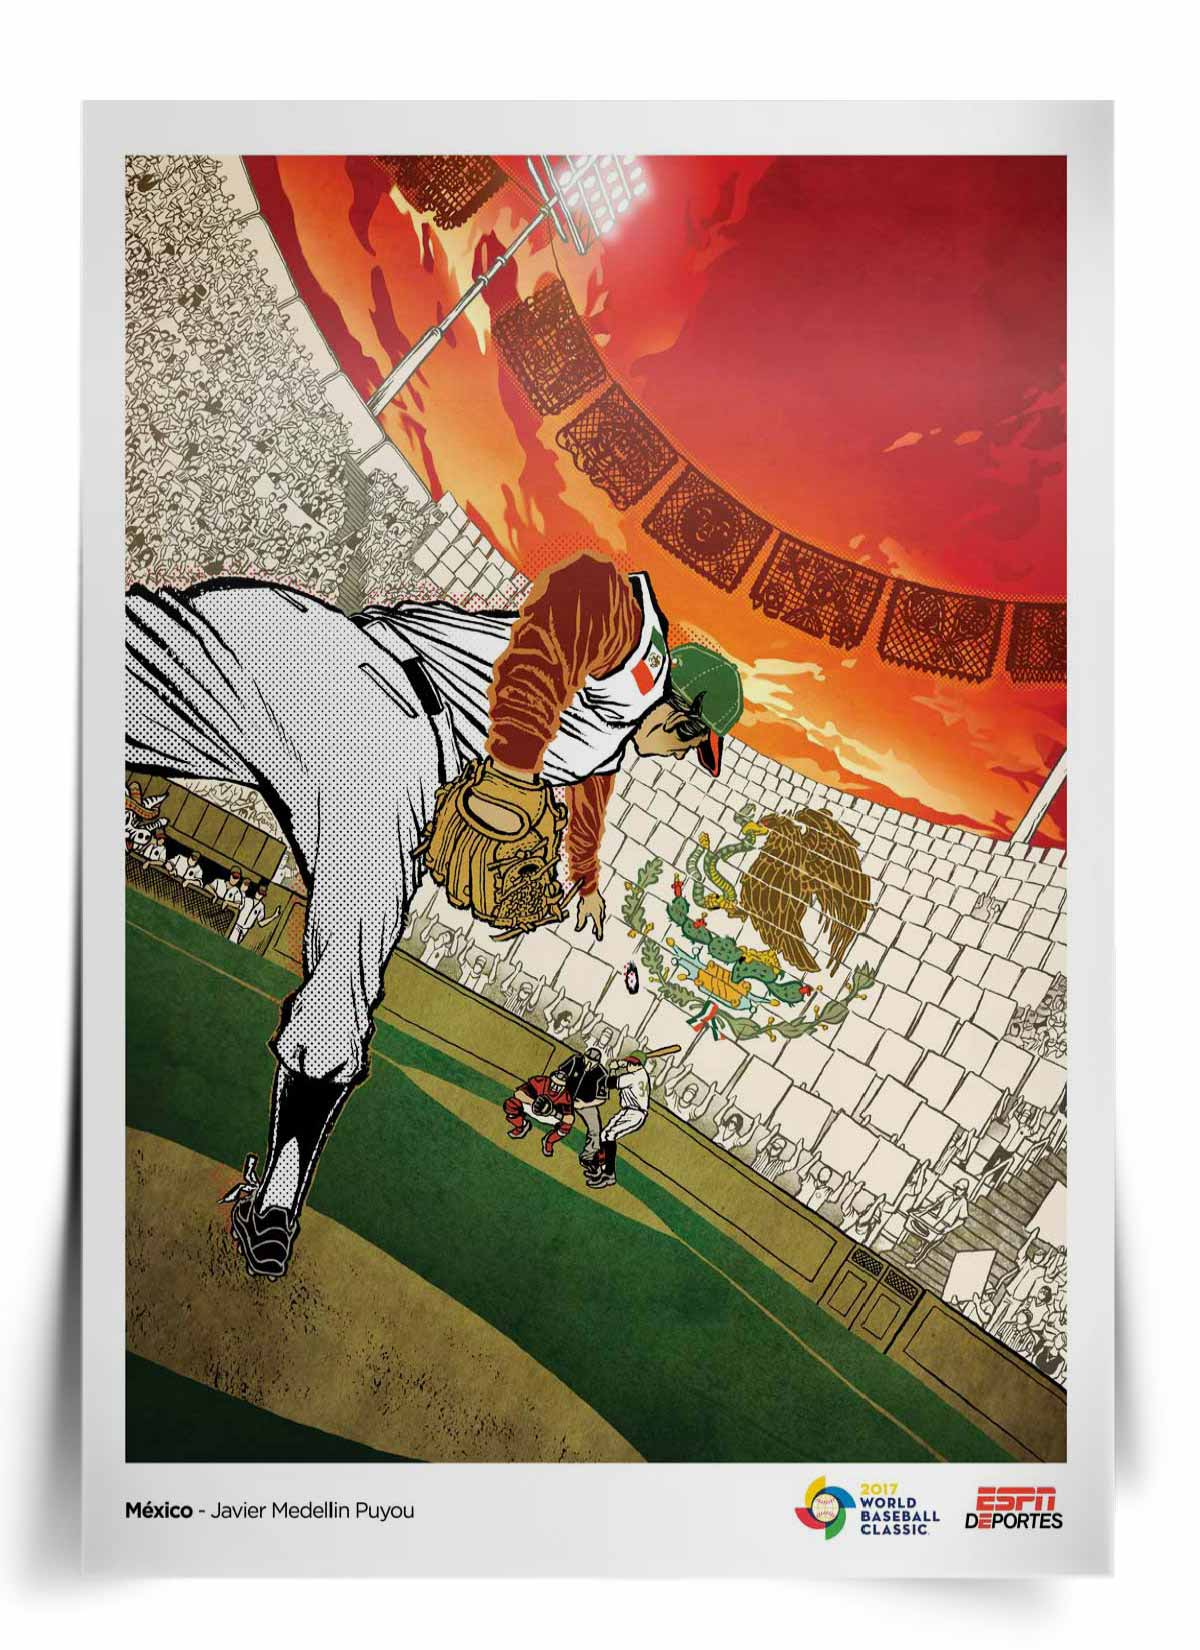 WBCposters_frame_012